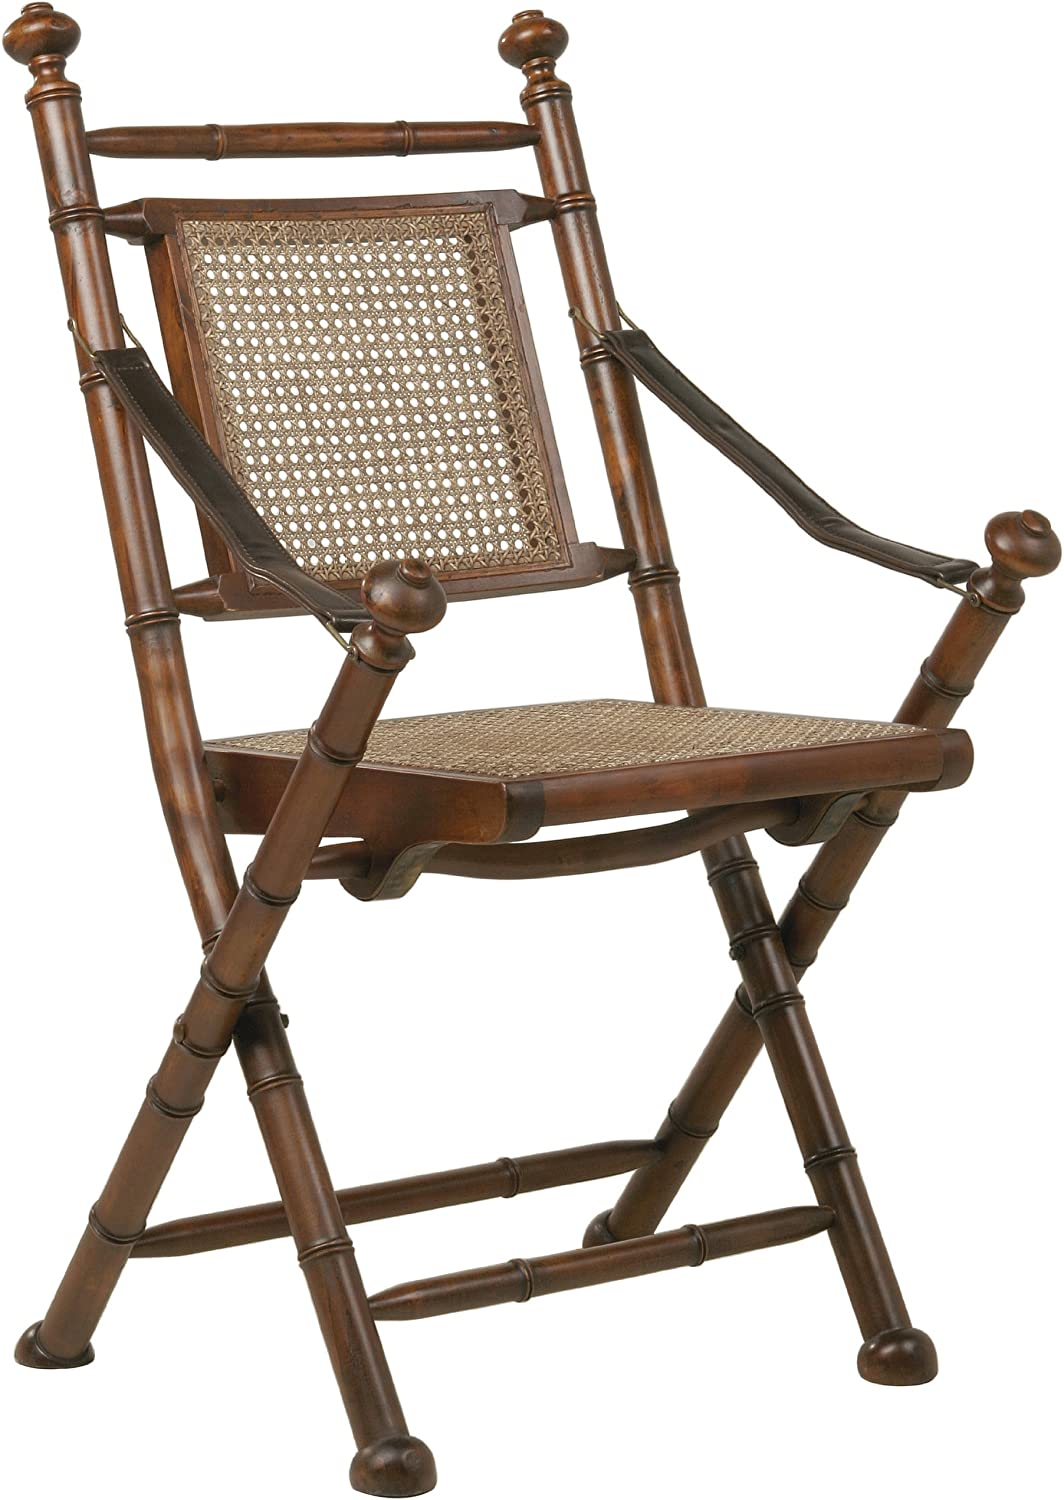 Kare Colonial 72756 Folding Chair 99 X 4 X 44 Cm Leather Amazon Co Uk Kitchen Home